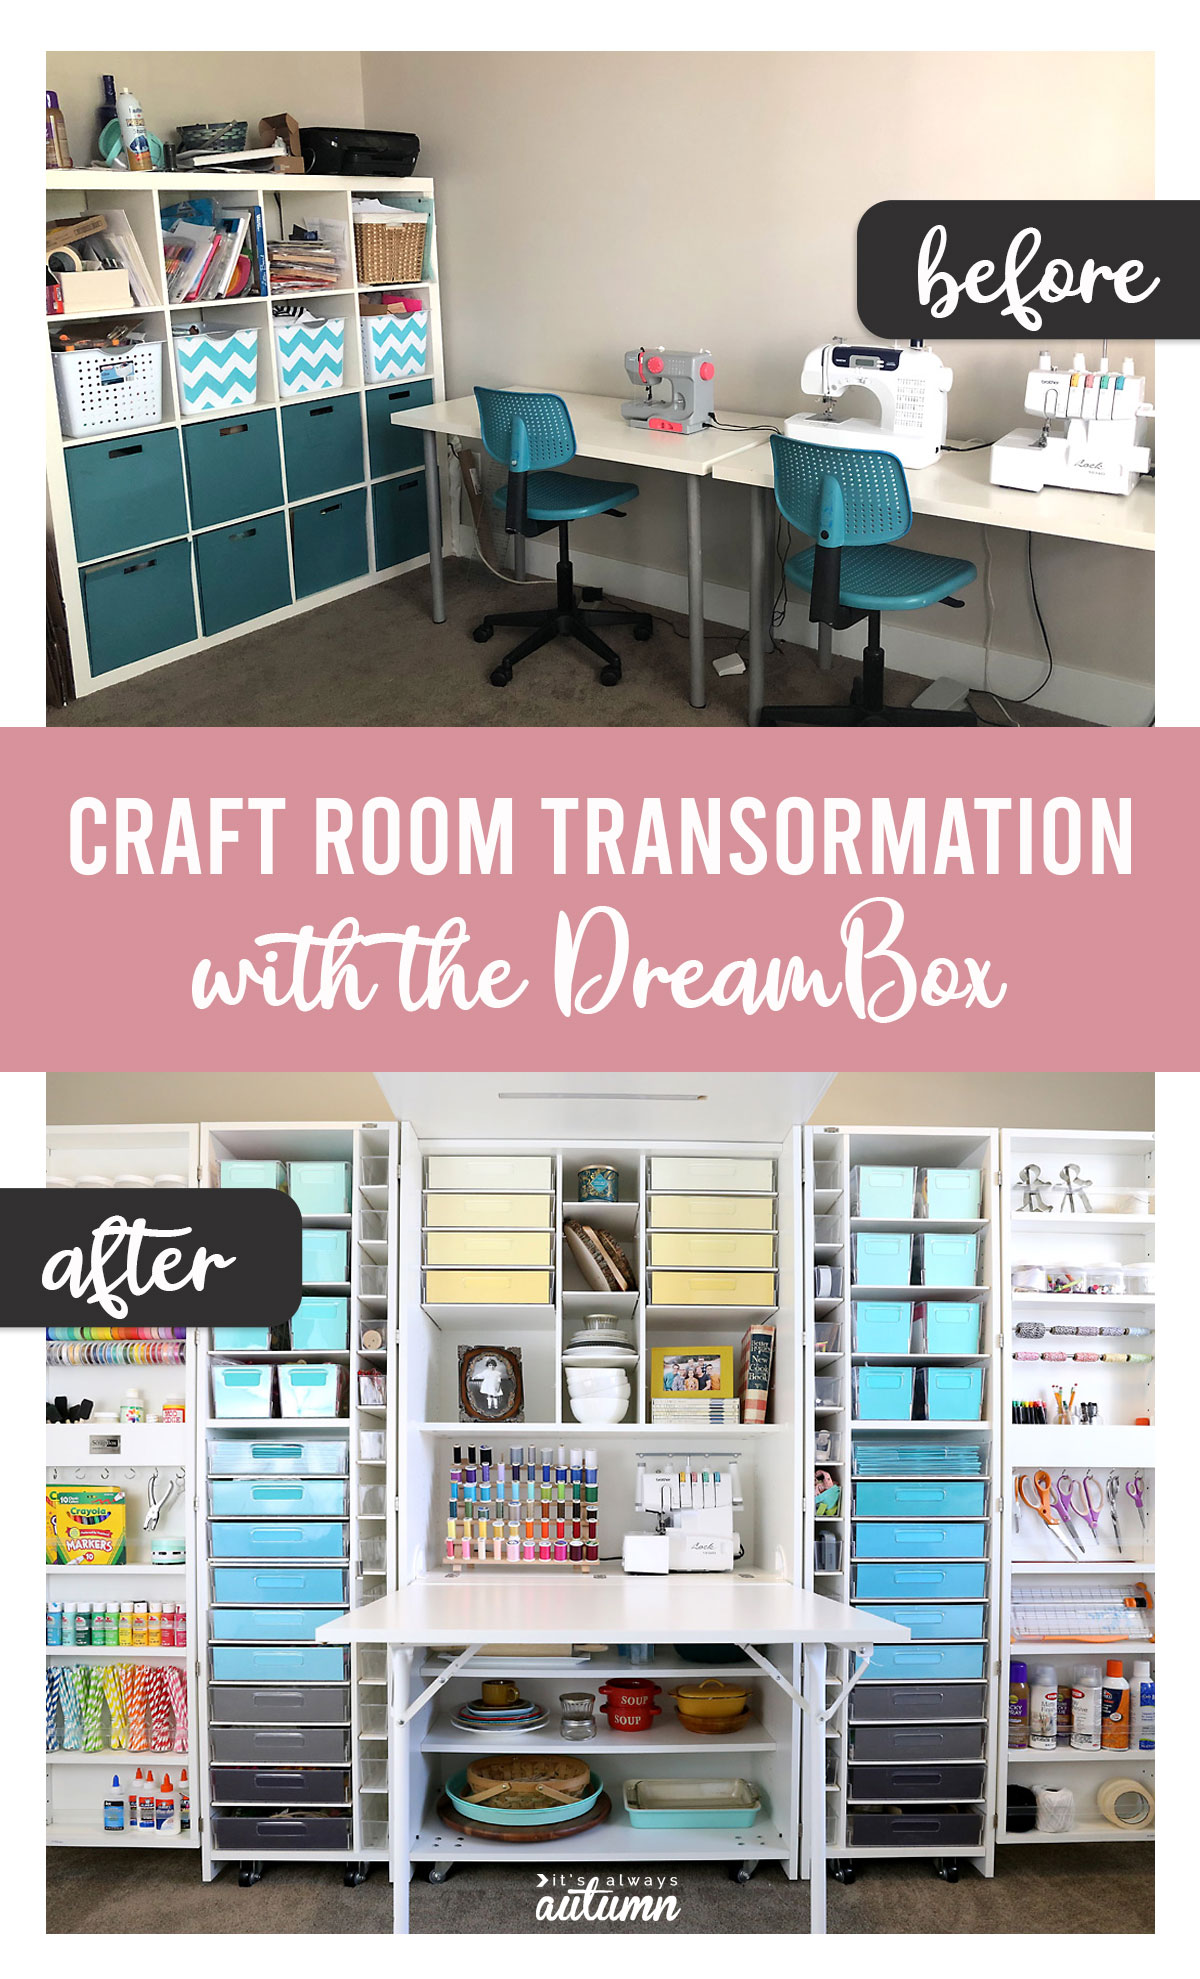 The DreamBox craft room organization + storage system BEFORE and AFTER